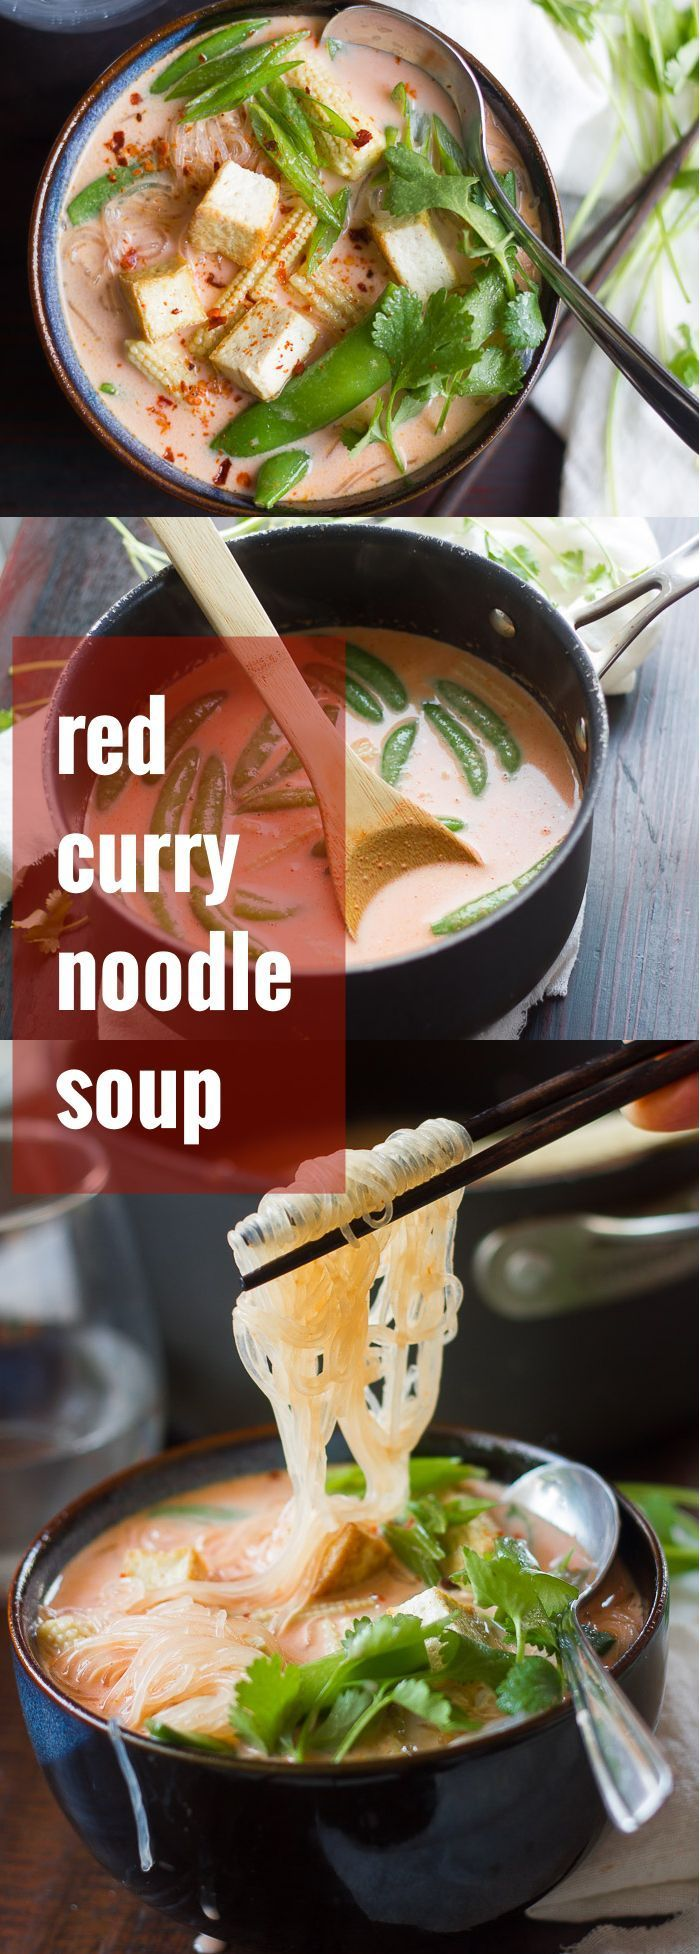 This cozy red curry noodle soup is made with tender noodles, veggies and tofu, swimming in a spicy Thai coconut milk broth.